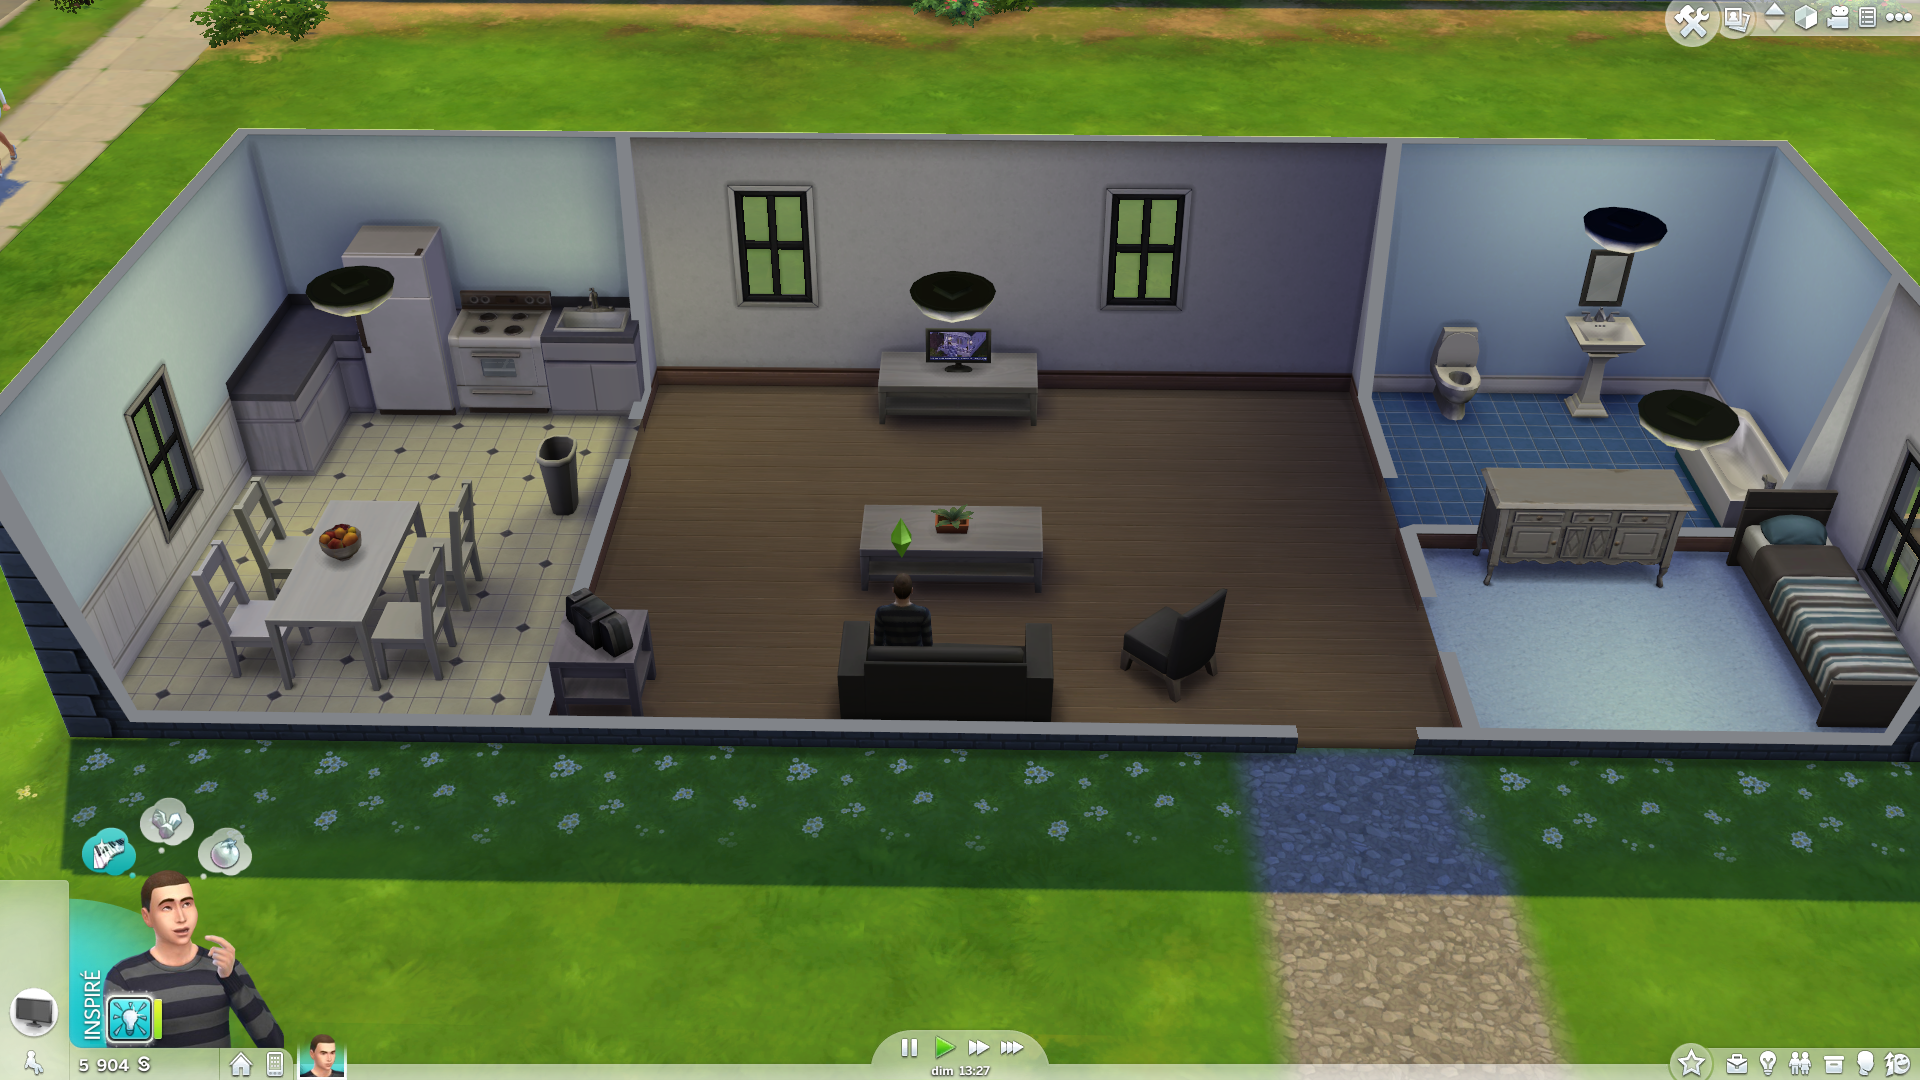 Id e maison sims 4 20170521143625 for Decoration maison sims 4